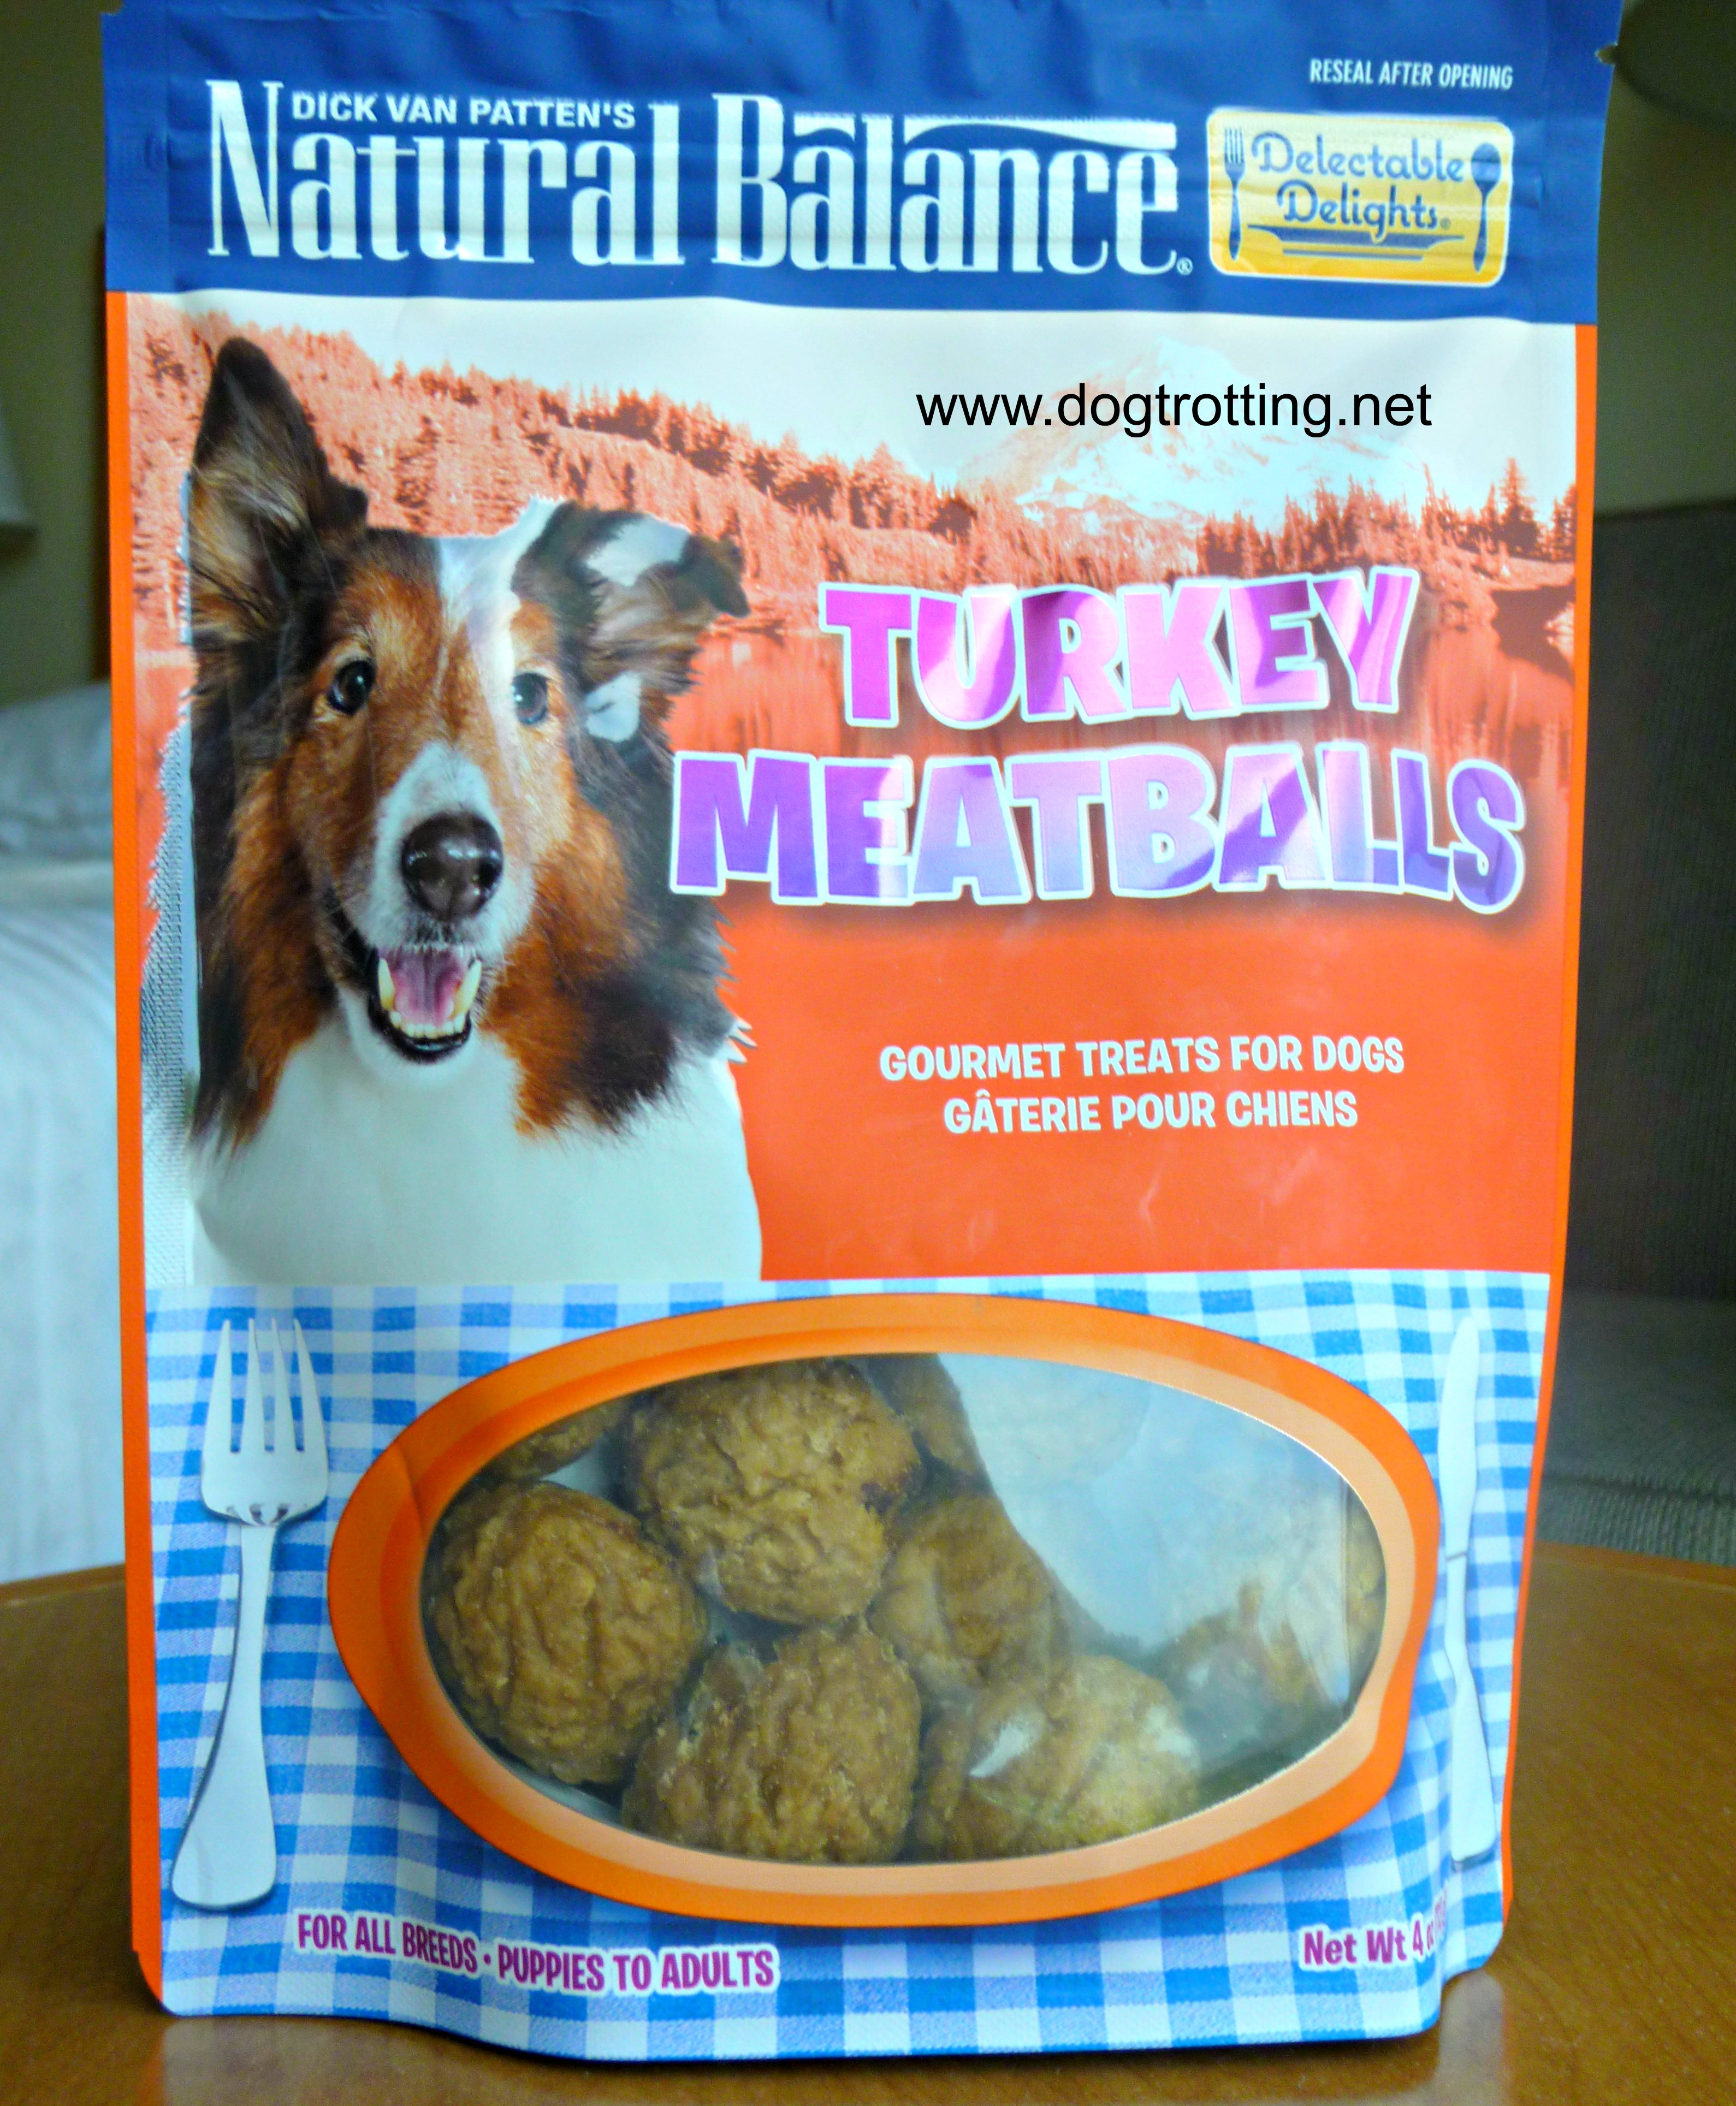 Dog treat review www.dogtrotting.net (turkey meatballs)